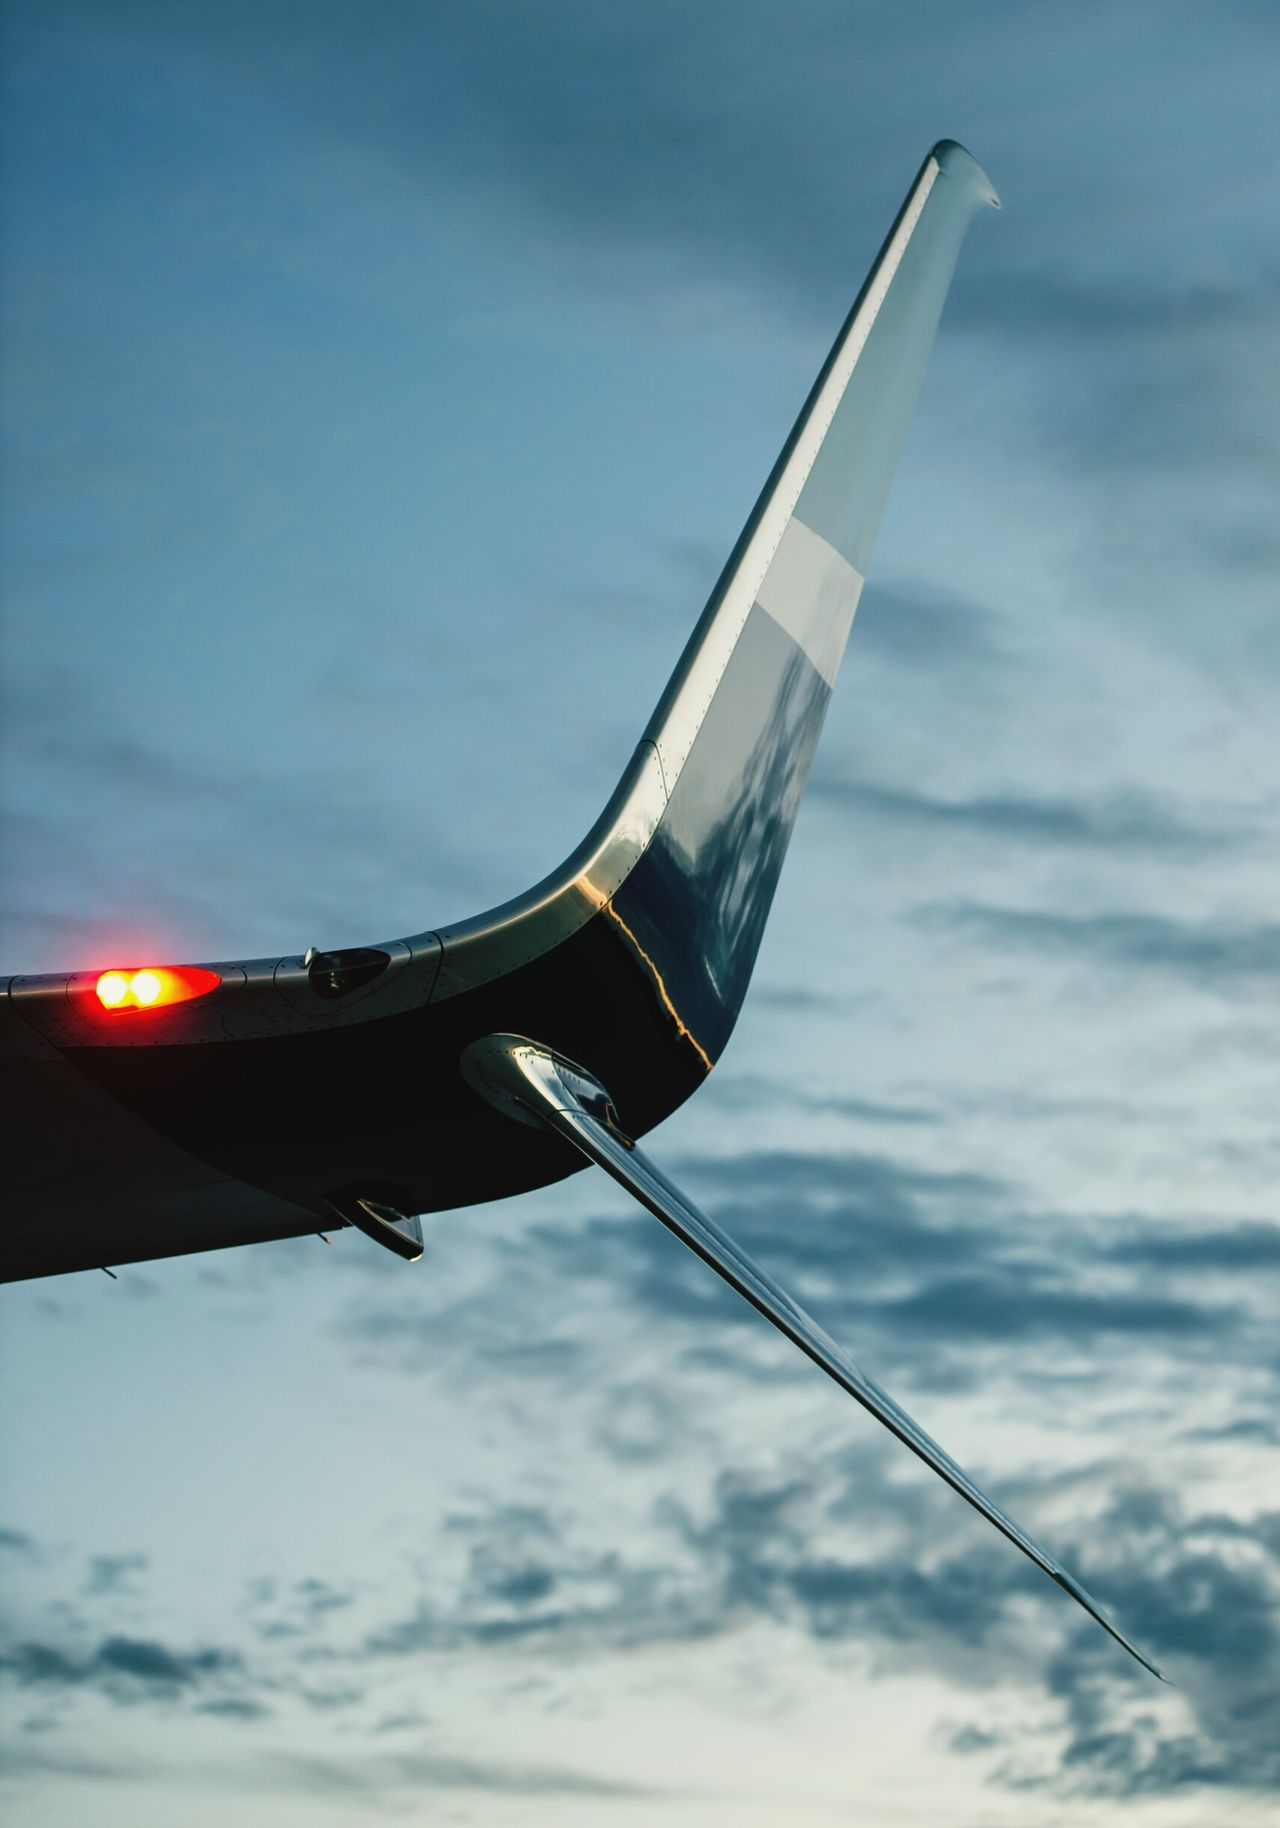 Airplane Aerospace Industry Commercial Airplane Close-up Wingtips Winglet Split Scimitar Airport Air Vehicle Transportation